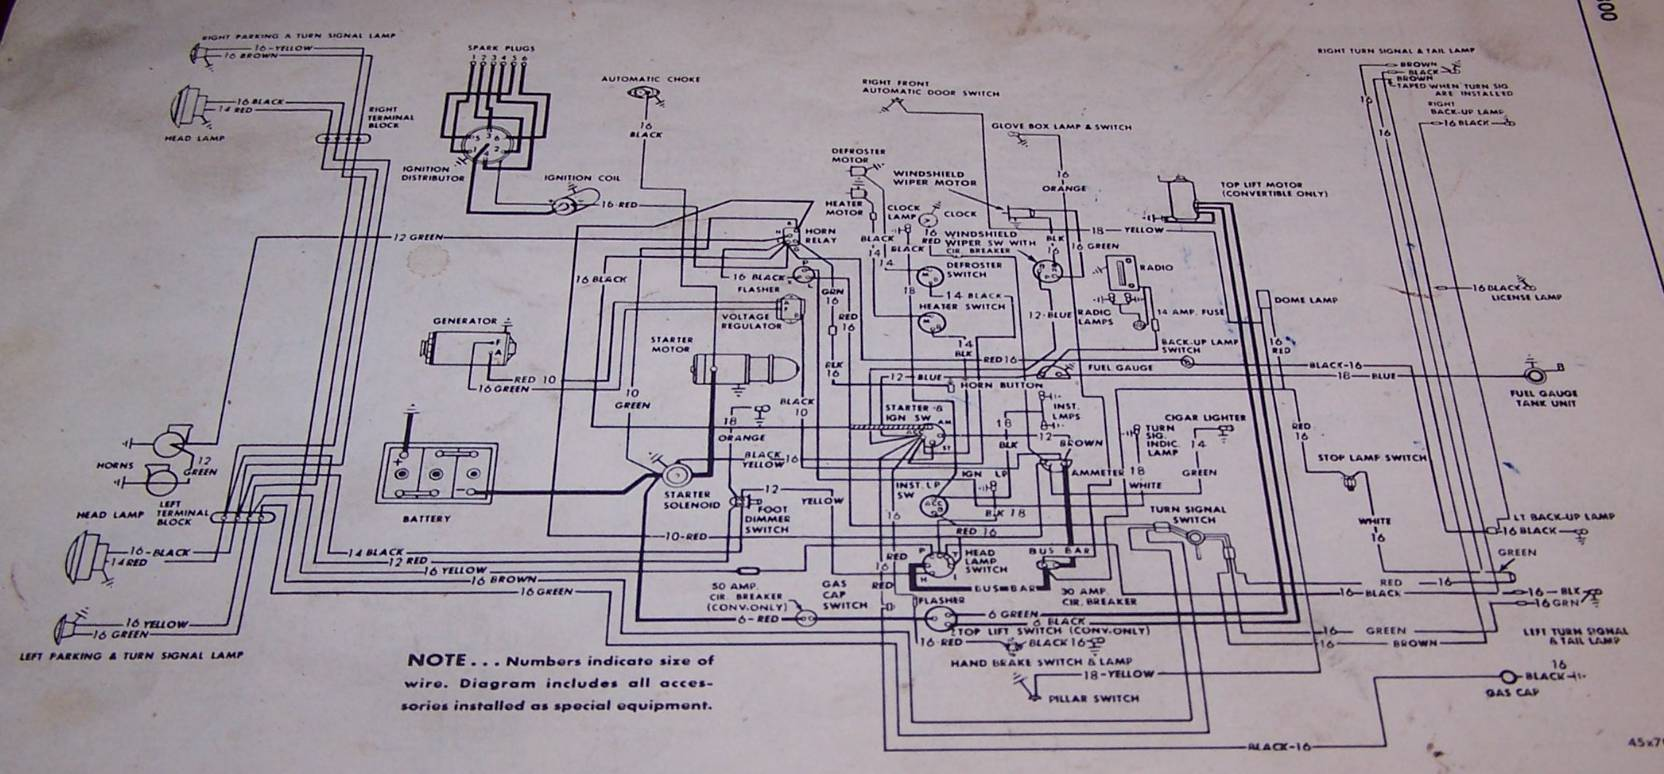 1949 plymouth wiring diagram auto electrical wiring diagram u2022 rh 6weeks co uk 1970 plymouth satellite wiring diagram 1970 plymouth fury wiring diagram